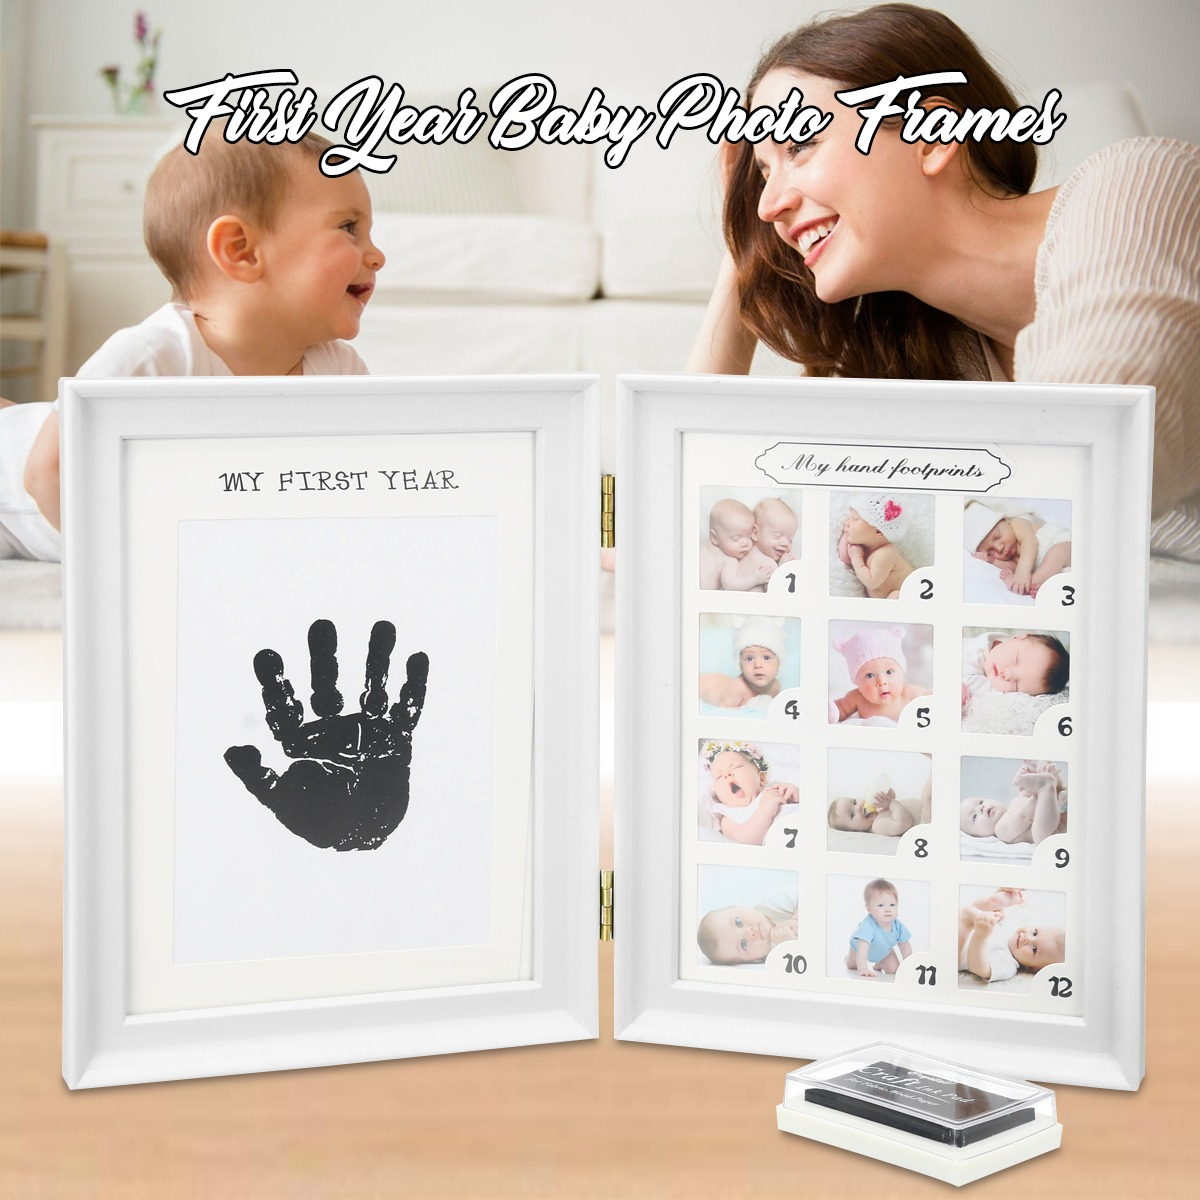 63fdd70dcd13 My First Year Baby Gift Kids Birthday Gift Home Family Decoration Ornaments  12 Months Picture Photo